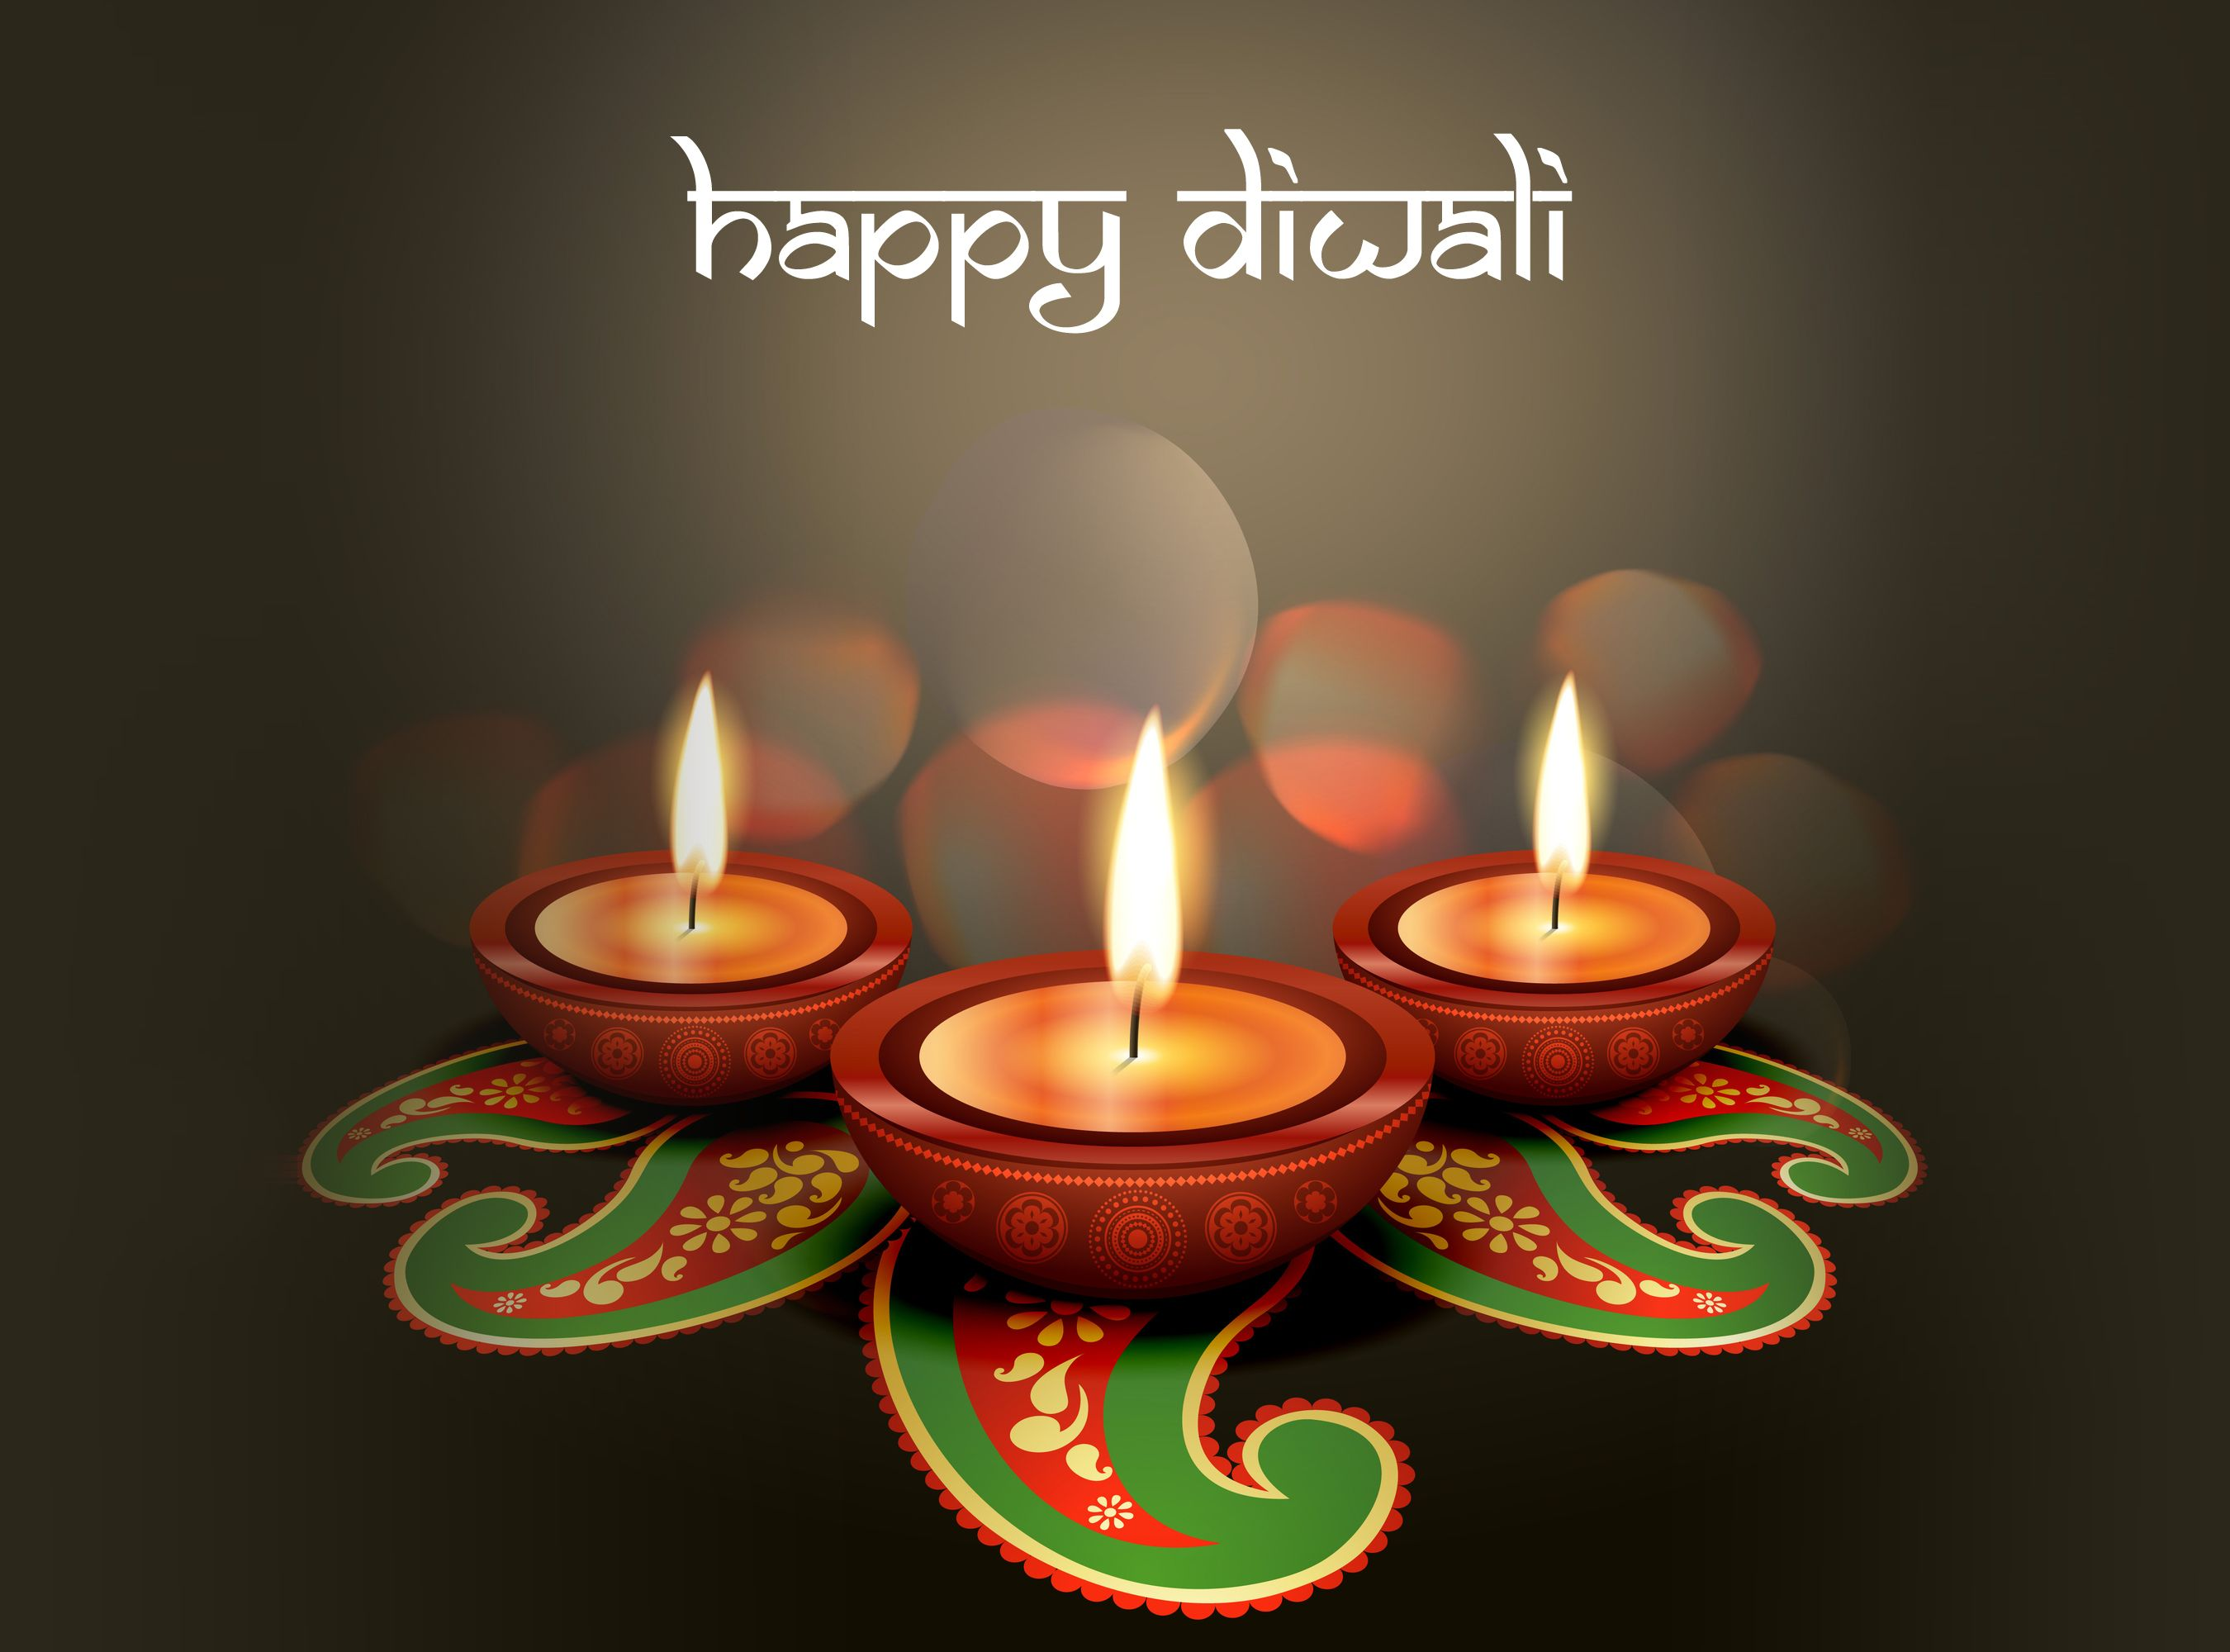 Happy Diwali Whatsapp Wallpapers Happy Diwali Greetings Wishes